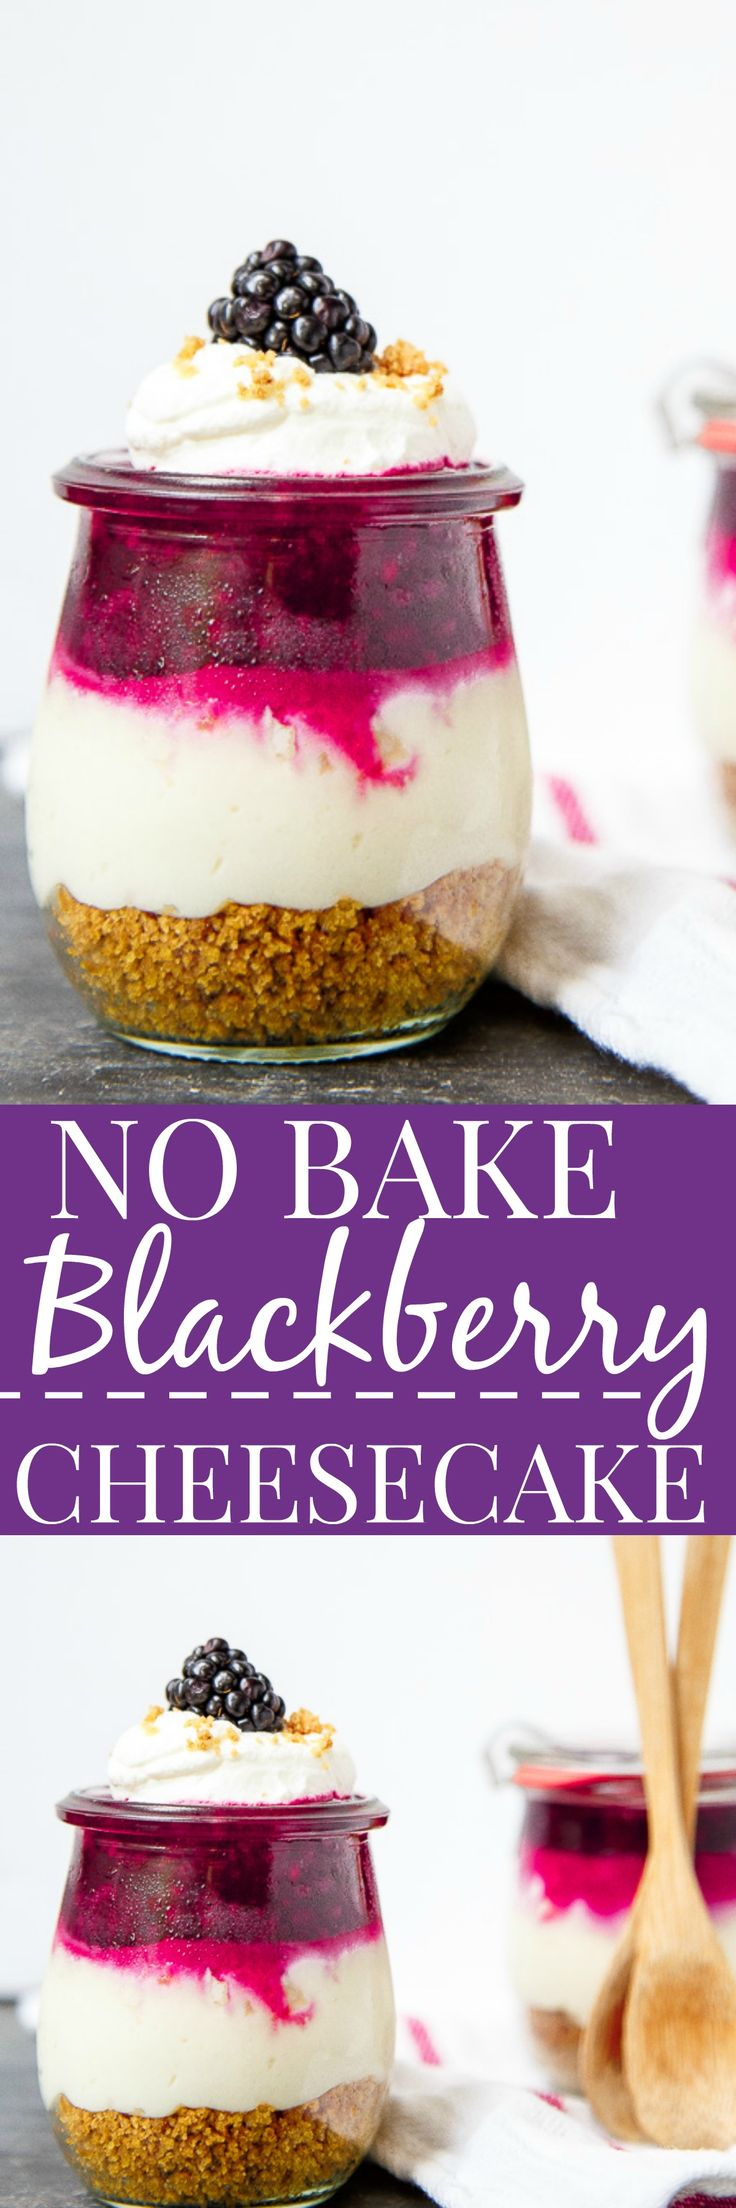 No bake cheesecakes in jars! Easy portable dessert idea for summer picnics. @DessertForTwo